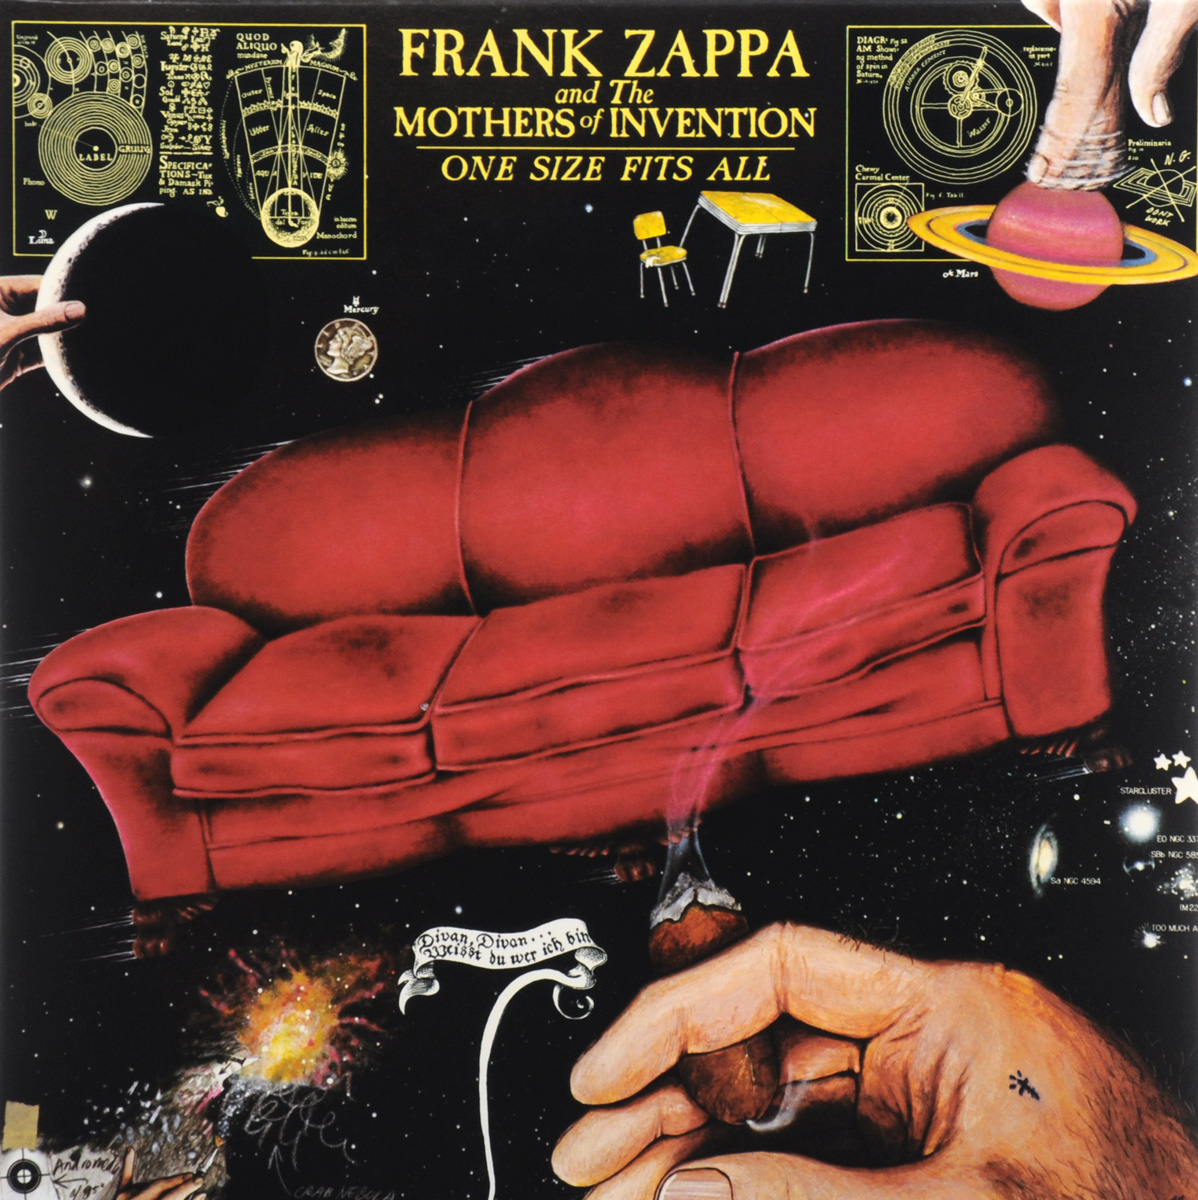 Фрэнк Заппа,The Mothers Of Invention Frank Zappa And The Mothers Of Invention. One Size Fits All (LP) alice domurat dreger hermaphrodites & the medical invention of sex